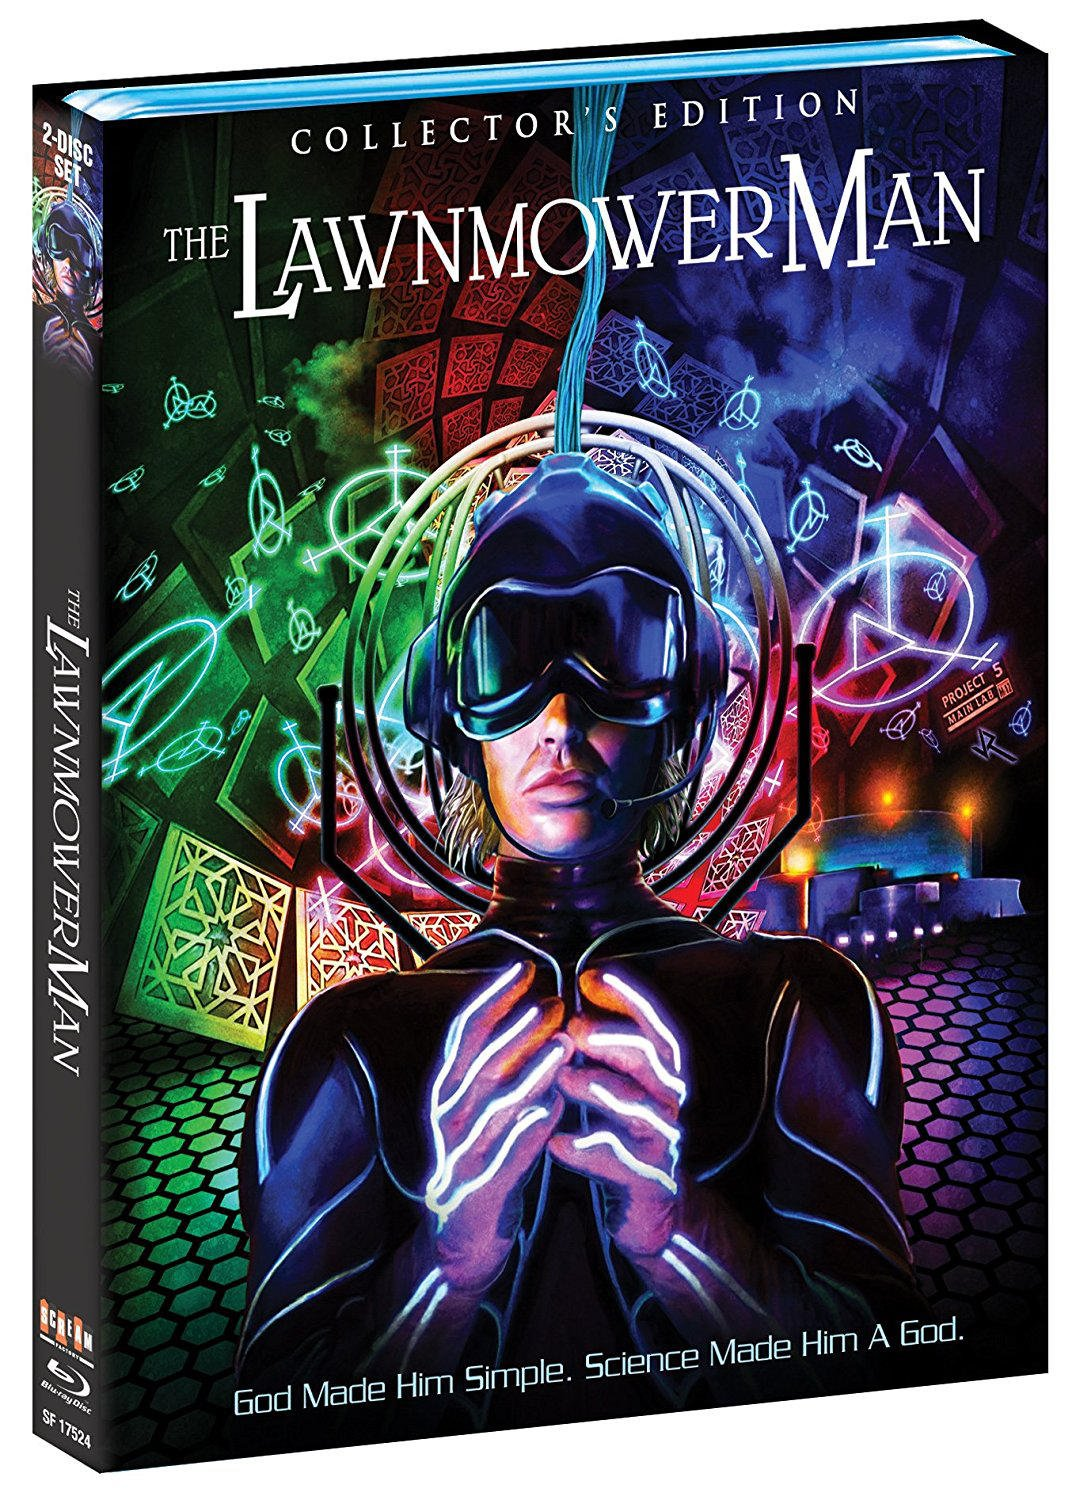 Contest: Win THE LAWNMOWER MAN Collector's Edition on Blu-ray